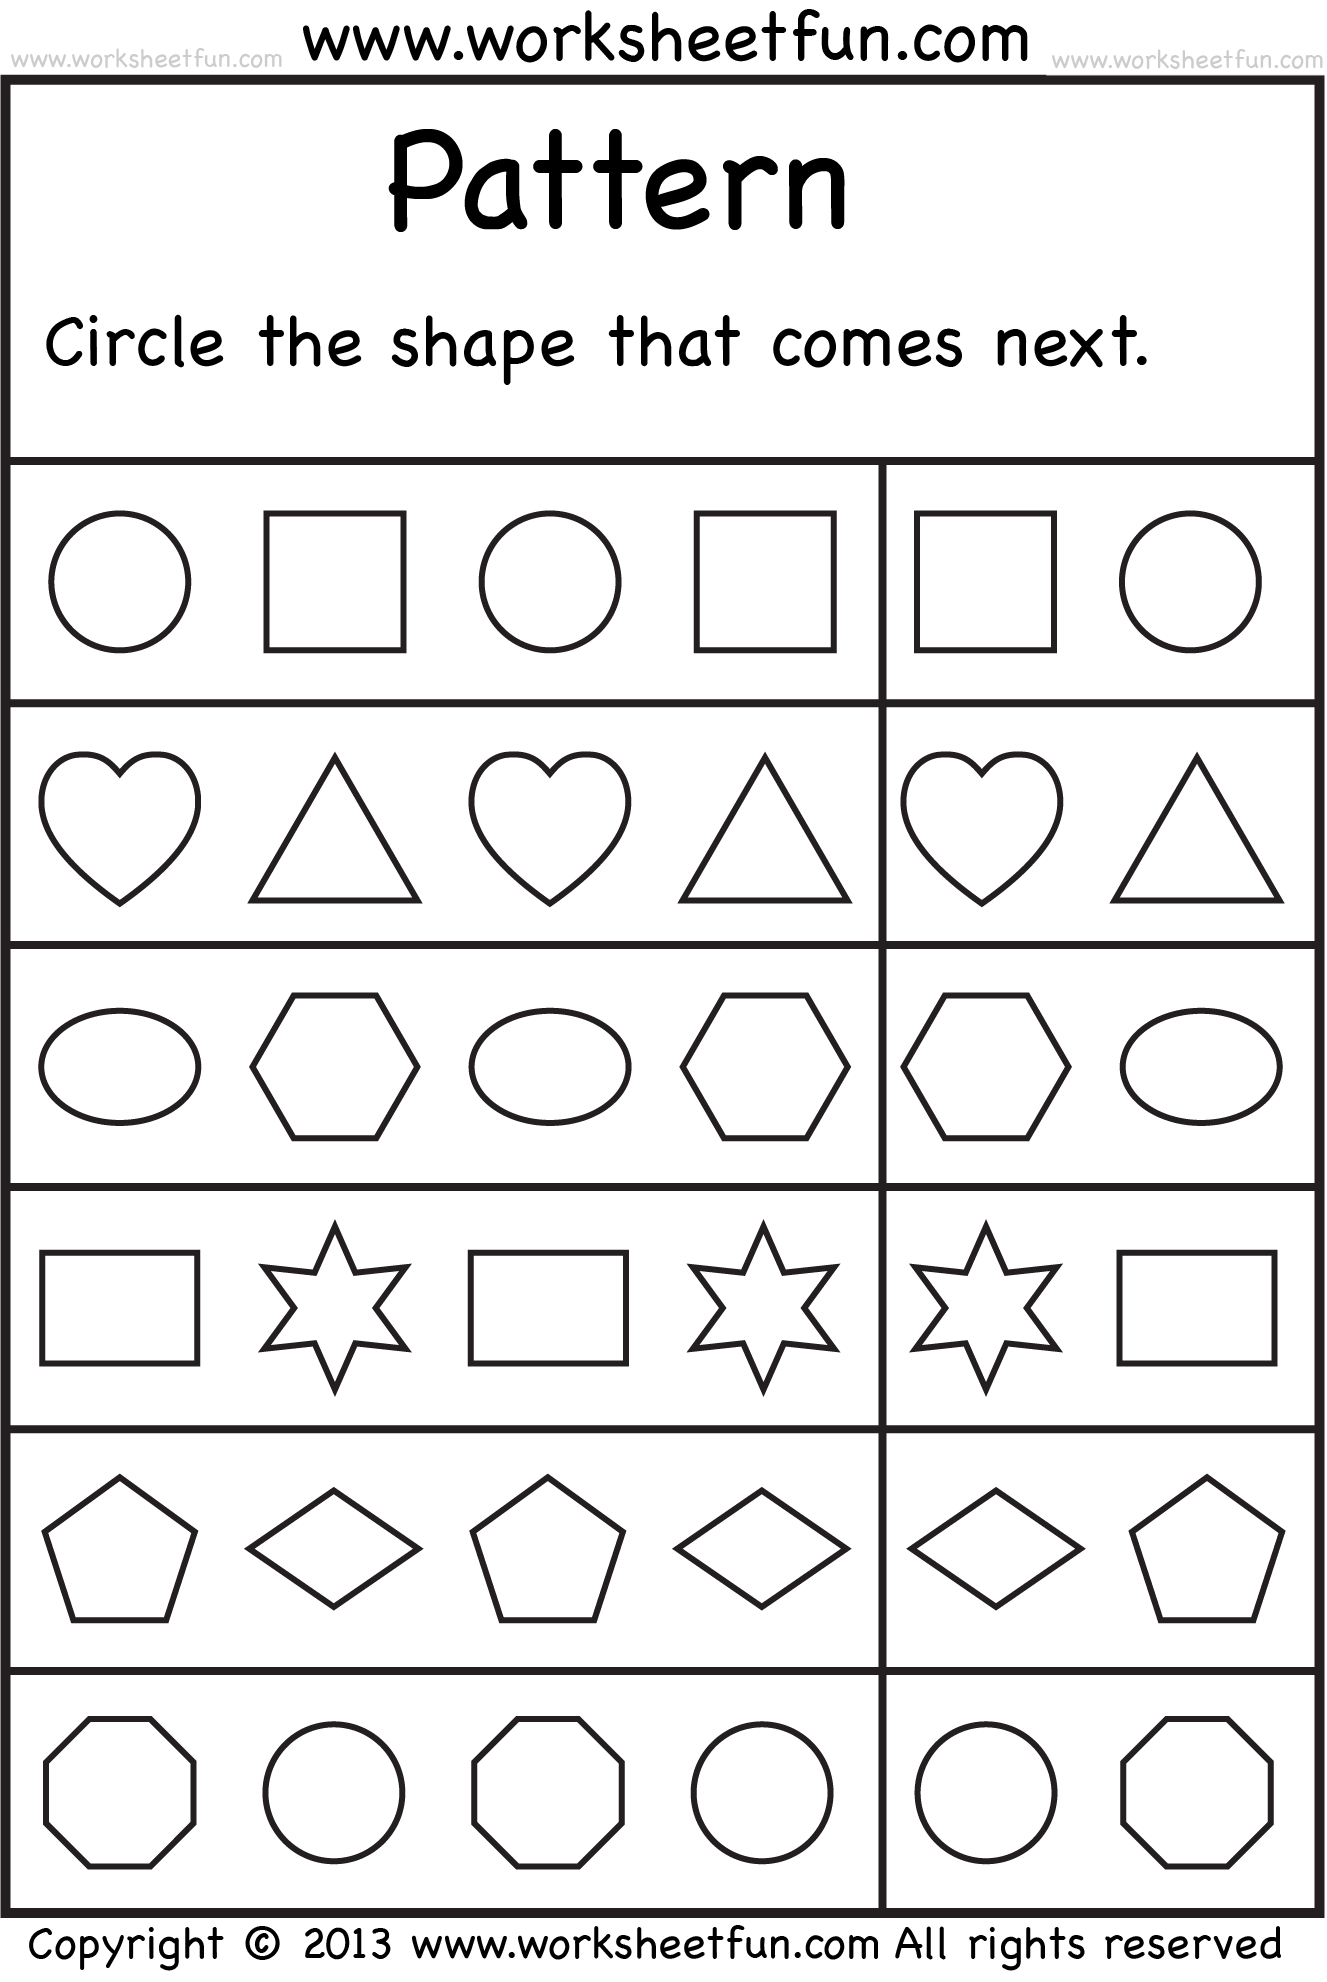 Weirdmailus  Surprising  Images About School Worksheets On Pinterest  Number Words  With Outstanding  Images About School Worksheets On Pinterest  Number Words Alphabet Worksheets And Free Printable Kindergarten Worksheets With Delightful Free Handwriting Name Worksheets Also How To Fill Out Form I Worksheet In Addition Coloring Fractions Worksheet And Affix Worksheet As Well As Time Worksheets For Kids Additionally Jonah And The Whale Worksheets From Pinterestcom With Weirdmailus  Outstanding  Images About School Worksheets On Pinterest  Number Words  With Delightful  Images About School Worksheets On Pinterest  Number Words Alphabet Worksheets And Free Printable Kindergarten Worksheets And Surprising Free Handwriting Name Worksheets Also How To Fill Out Form I Worksheet In Addition Coloring Fractions Worksheet From Pinterestcom